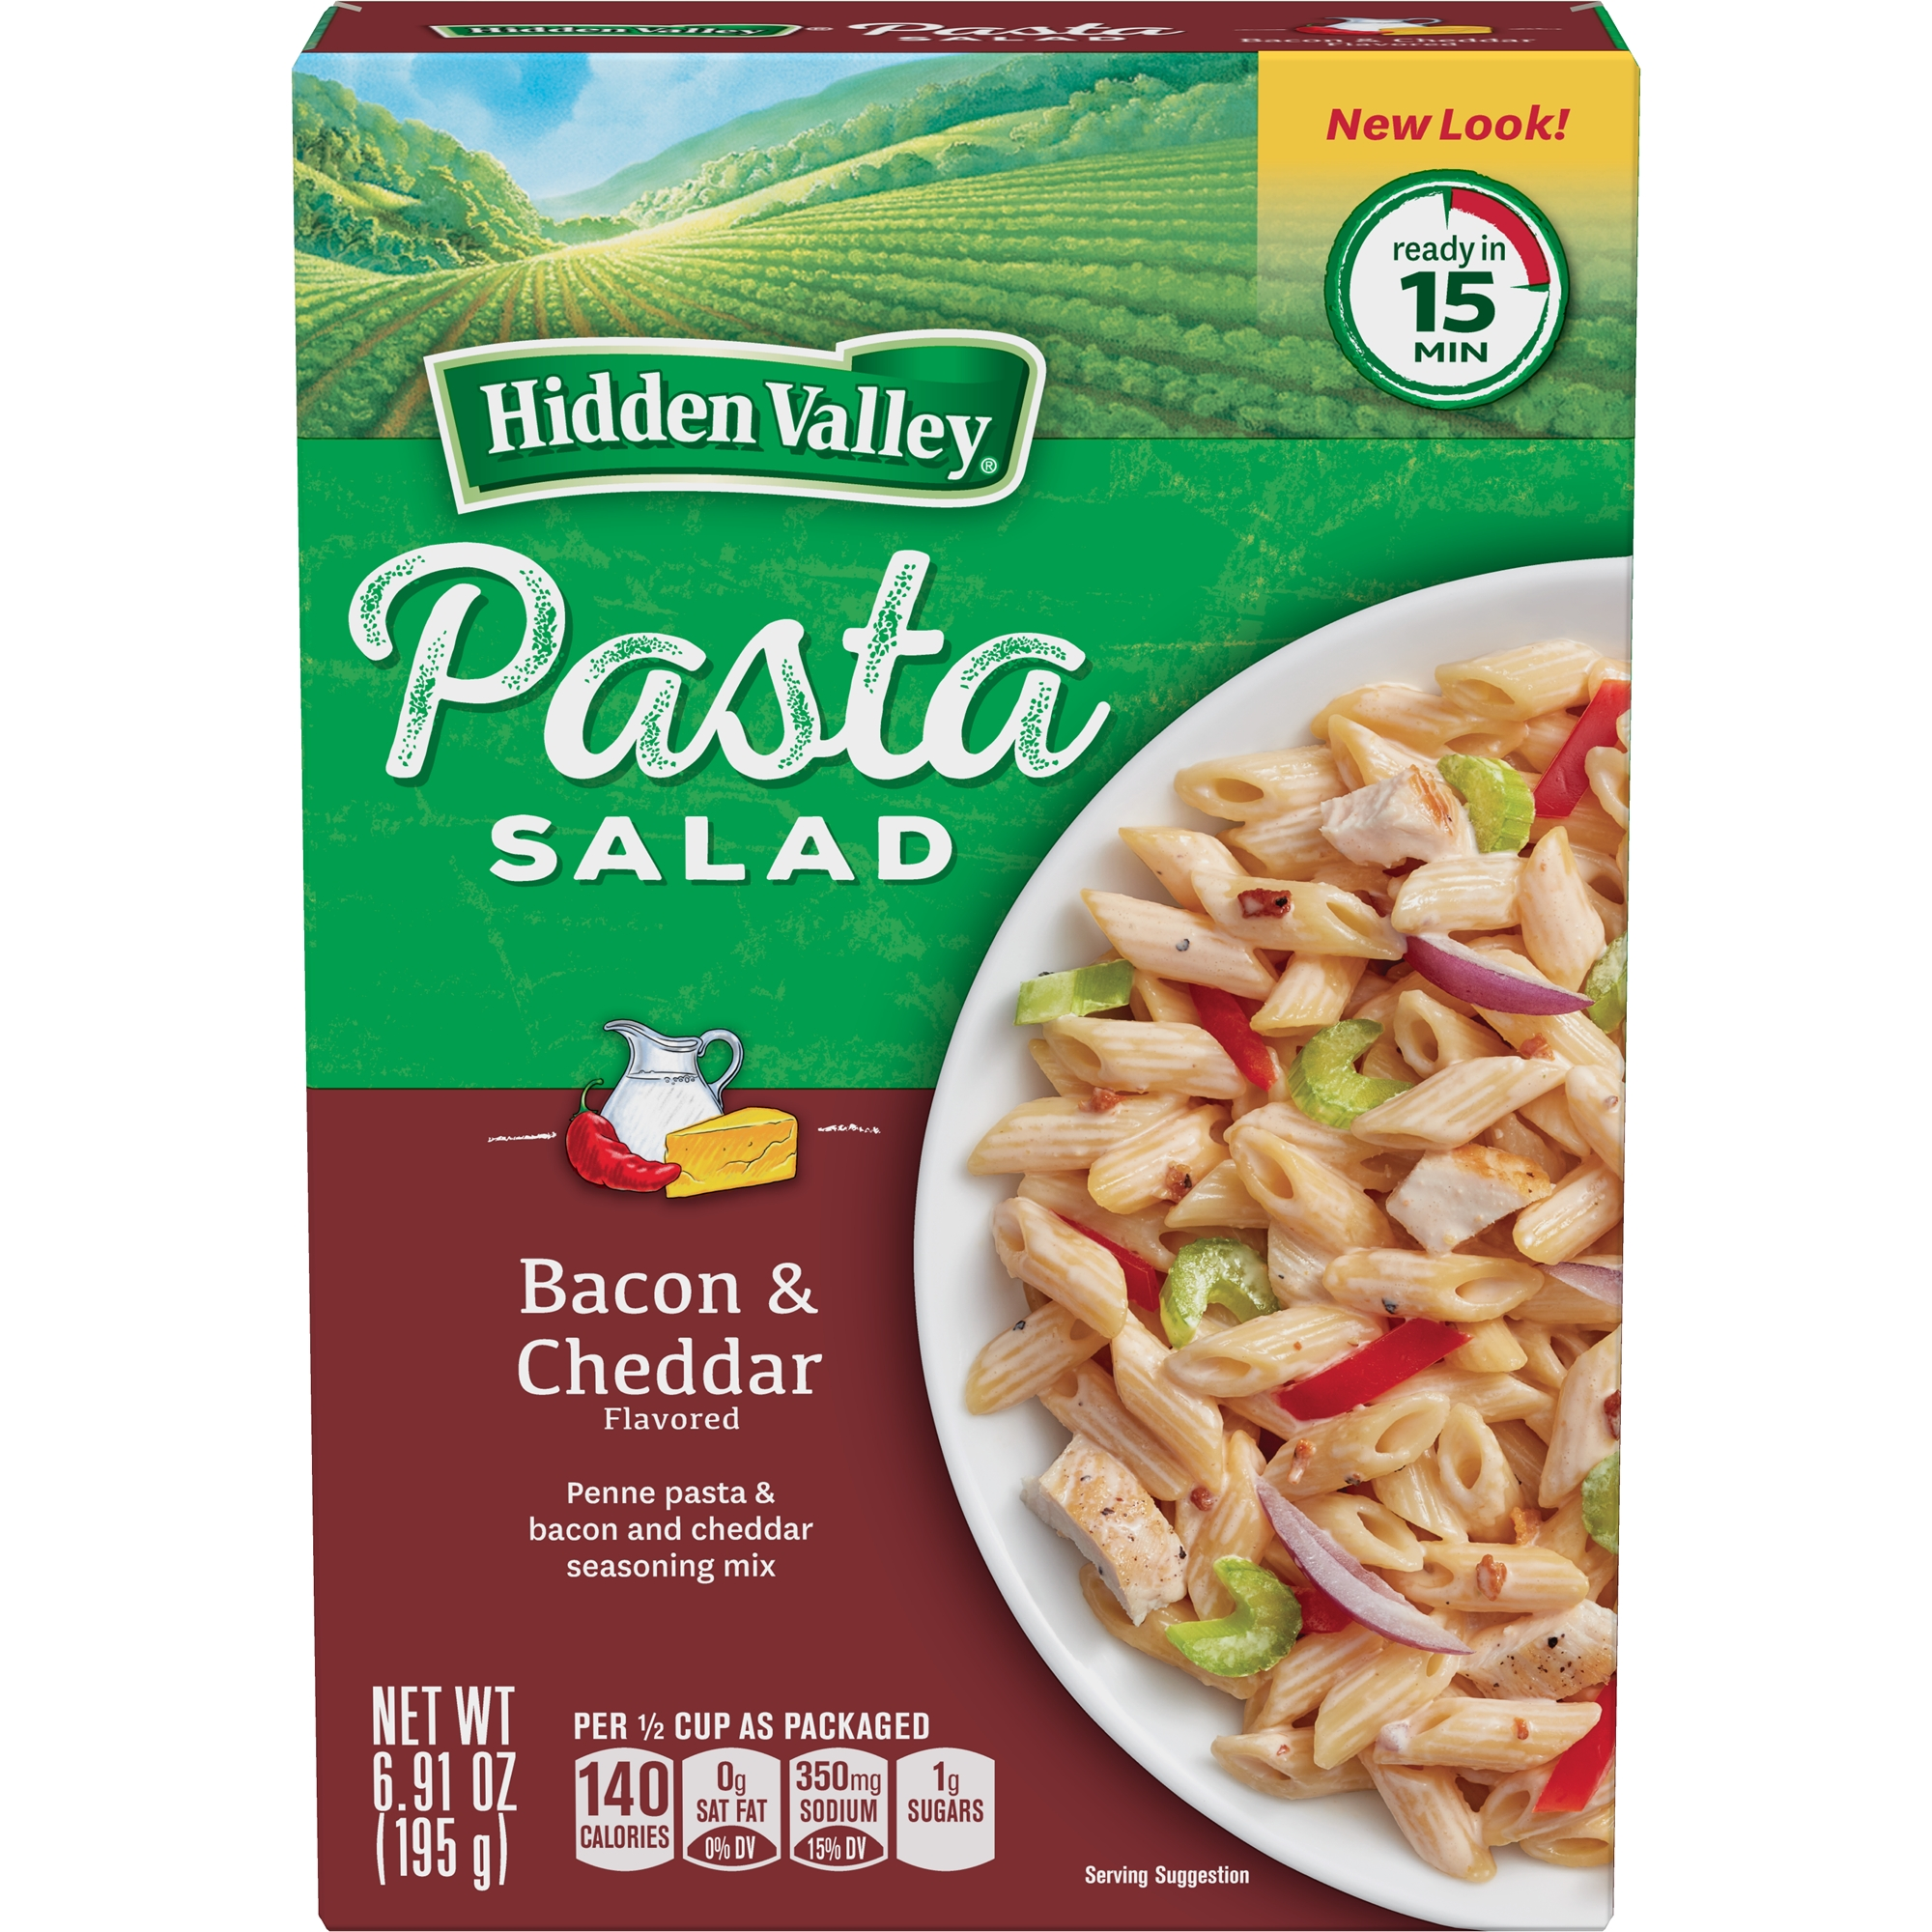 Hidden Valley Pasta Salad, Bacon and Cheddar, 6.91 Ounces by The HV Food Products Co.